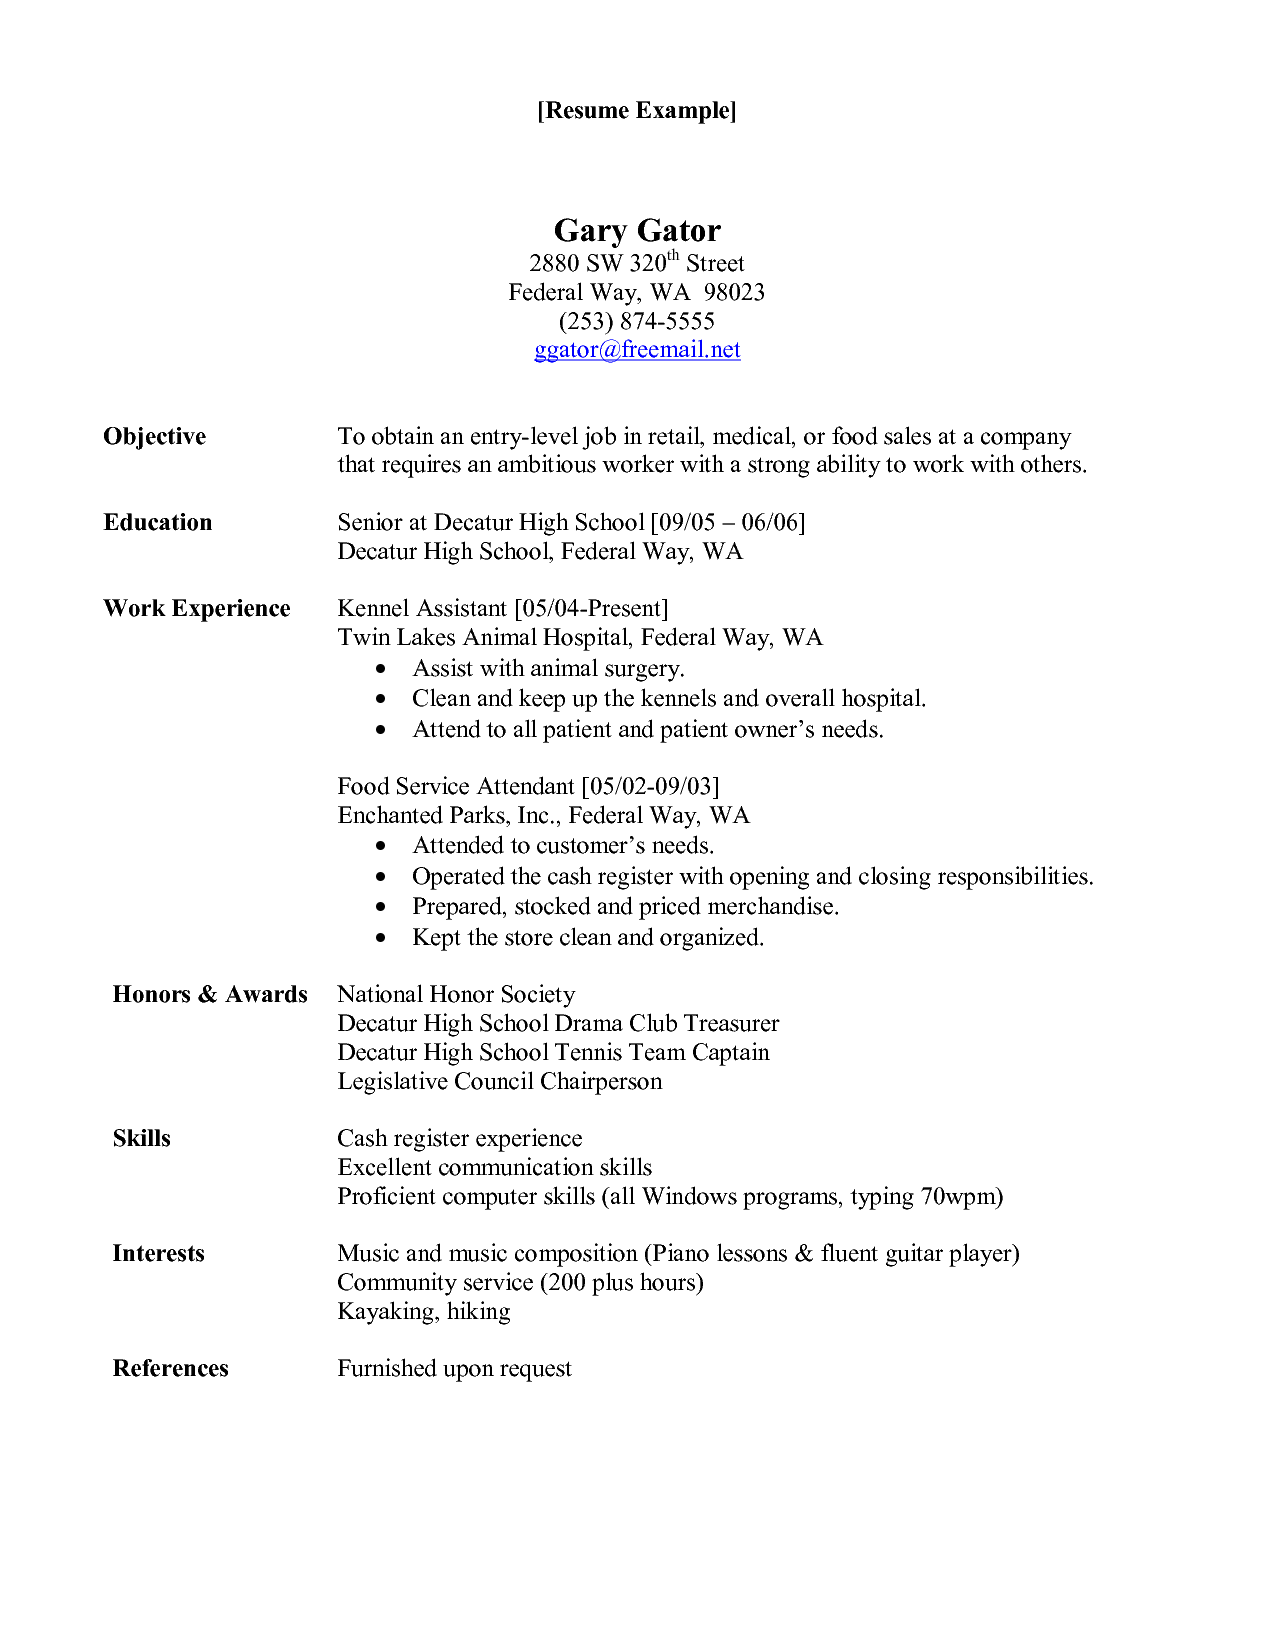 Brilliant Ideas Of Resume For Hospital Job On Animal Care Worker